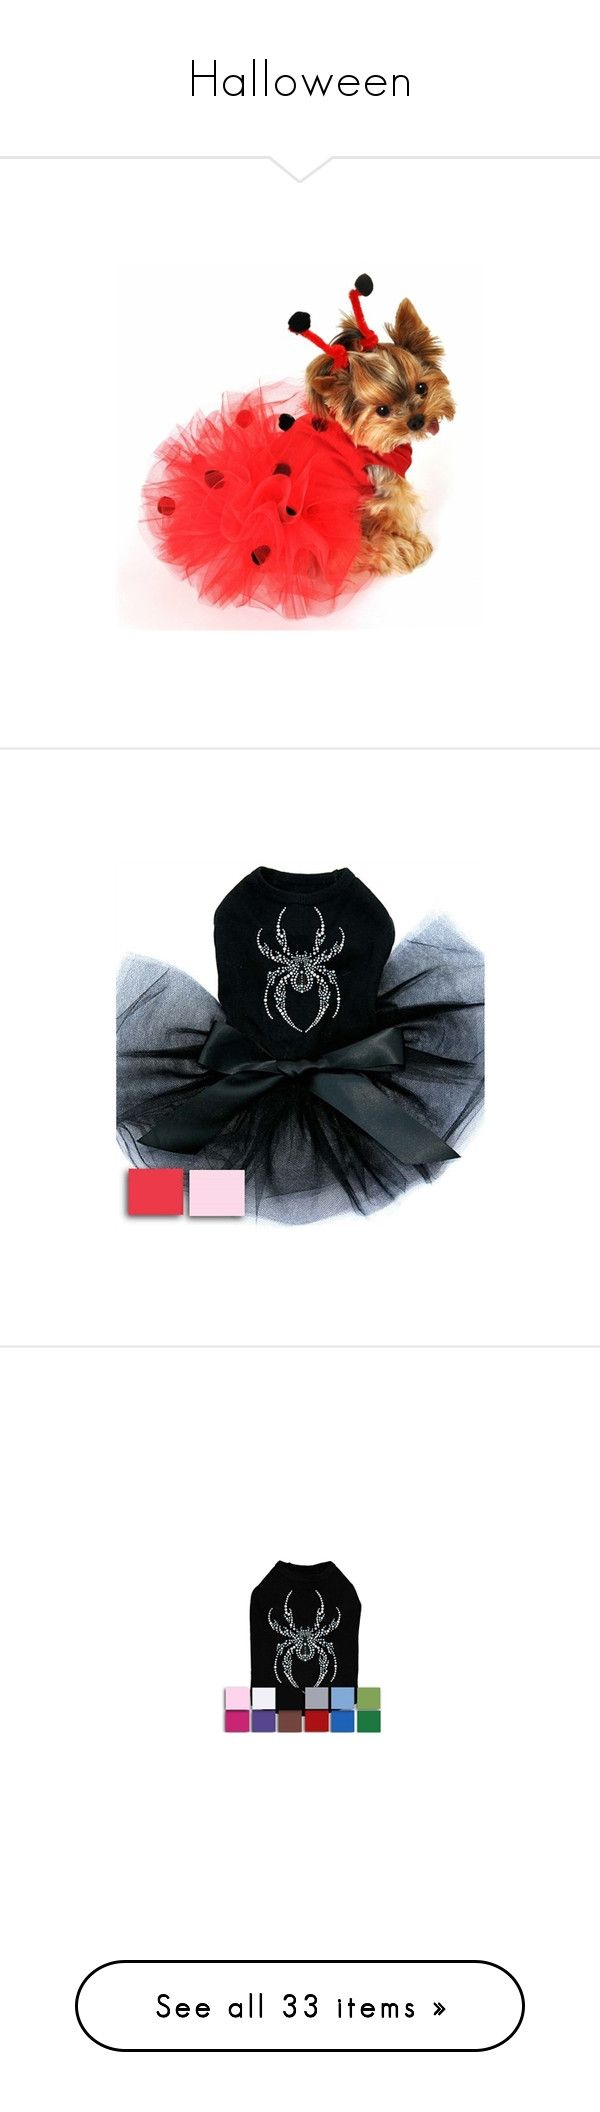 """Halloween"" by lisaland50 on Polyvore featuring costumes, halloween costumes, bunny costume, adult costume, adult halloween costumes, adult bunny costume, bunny halloween costume, halloween poncho costume, lace slip and poncho costume"